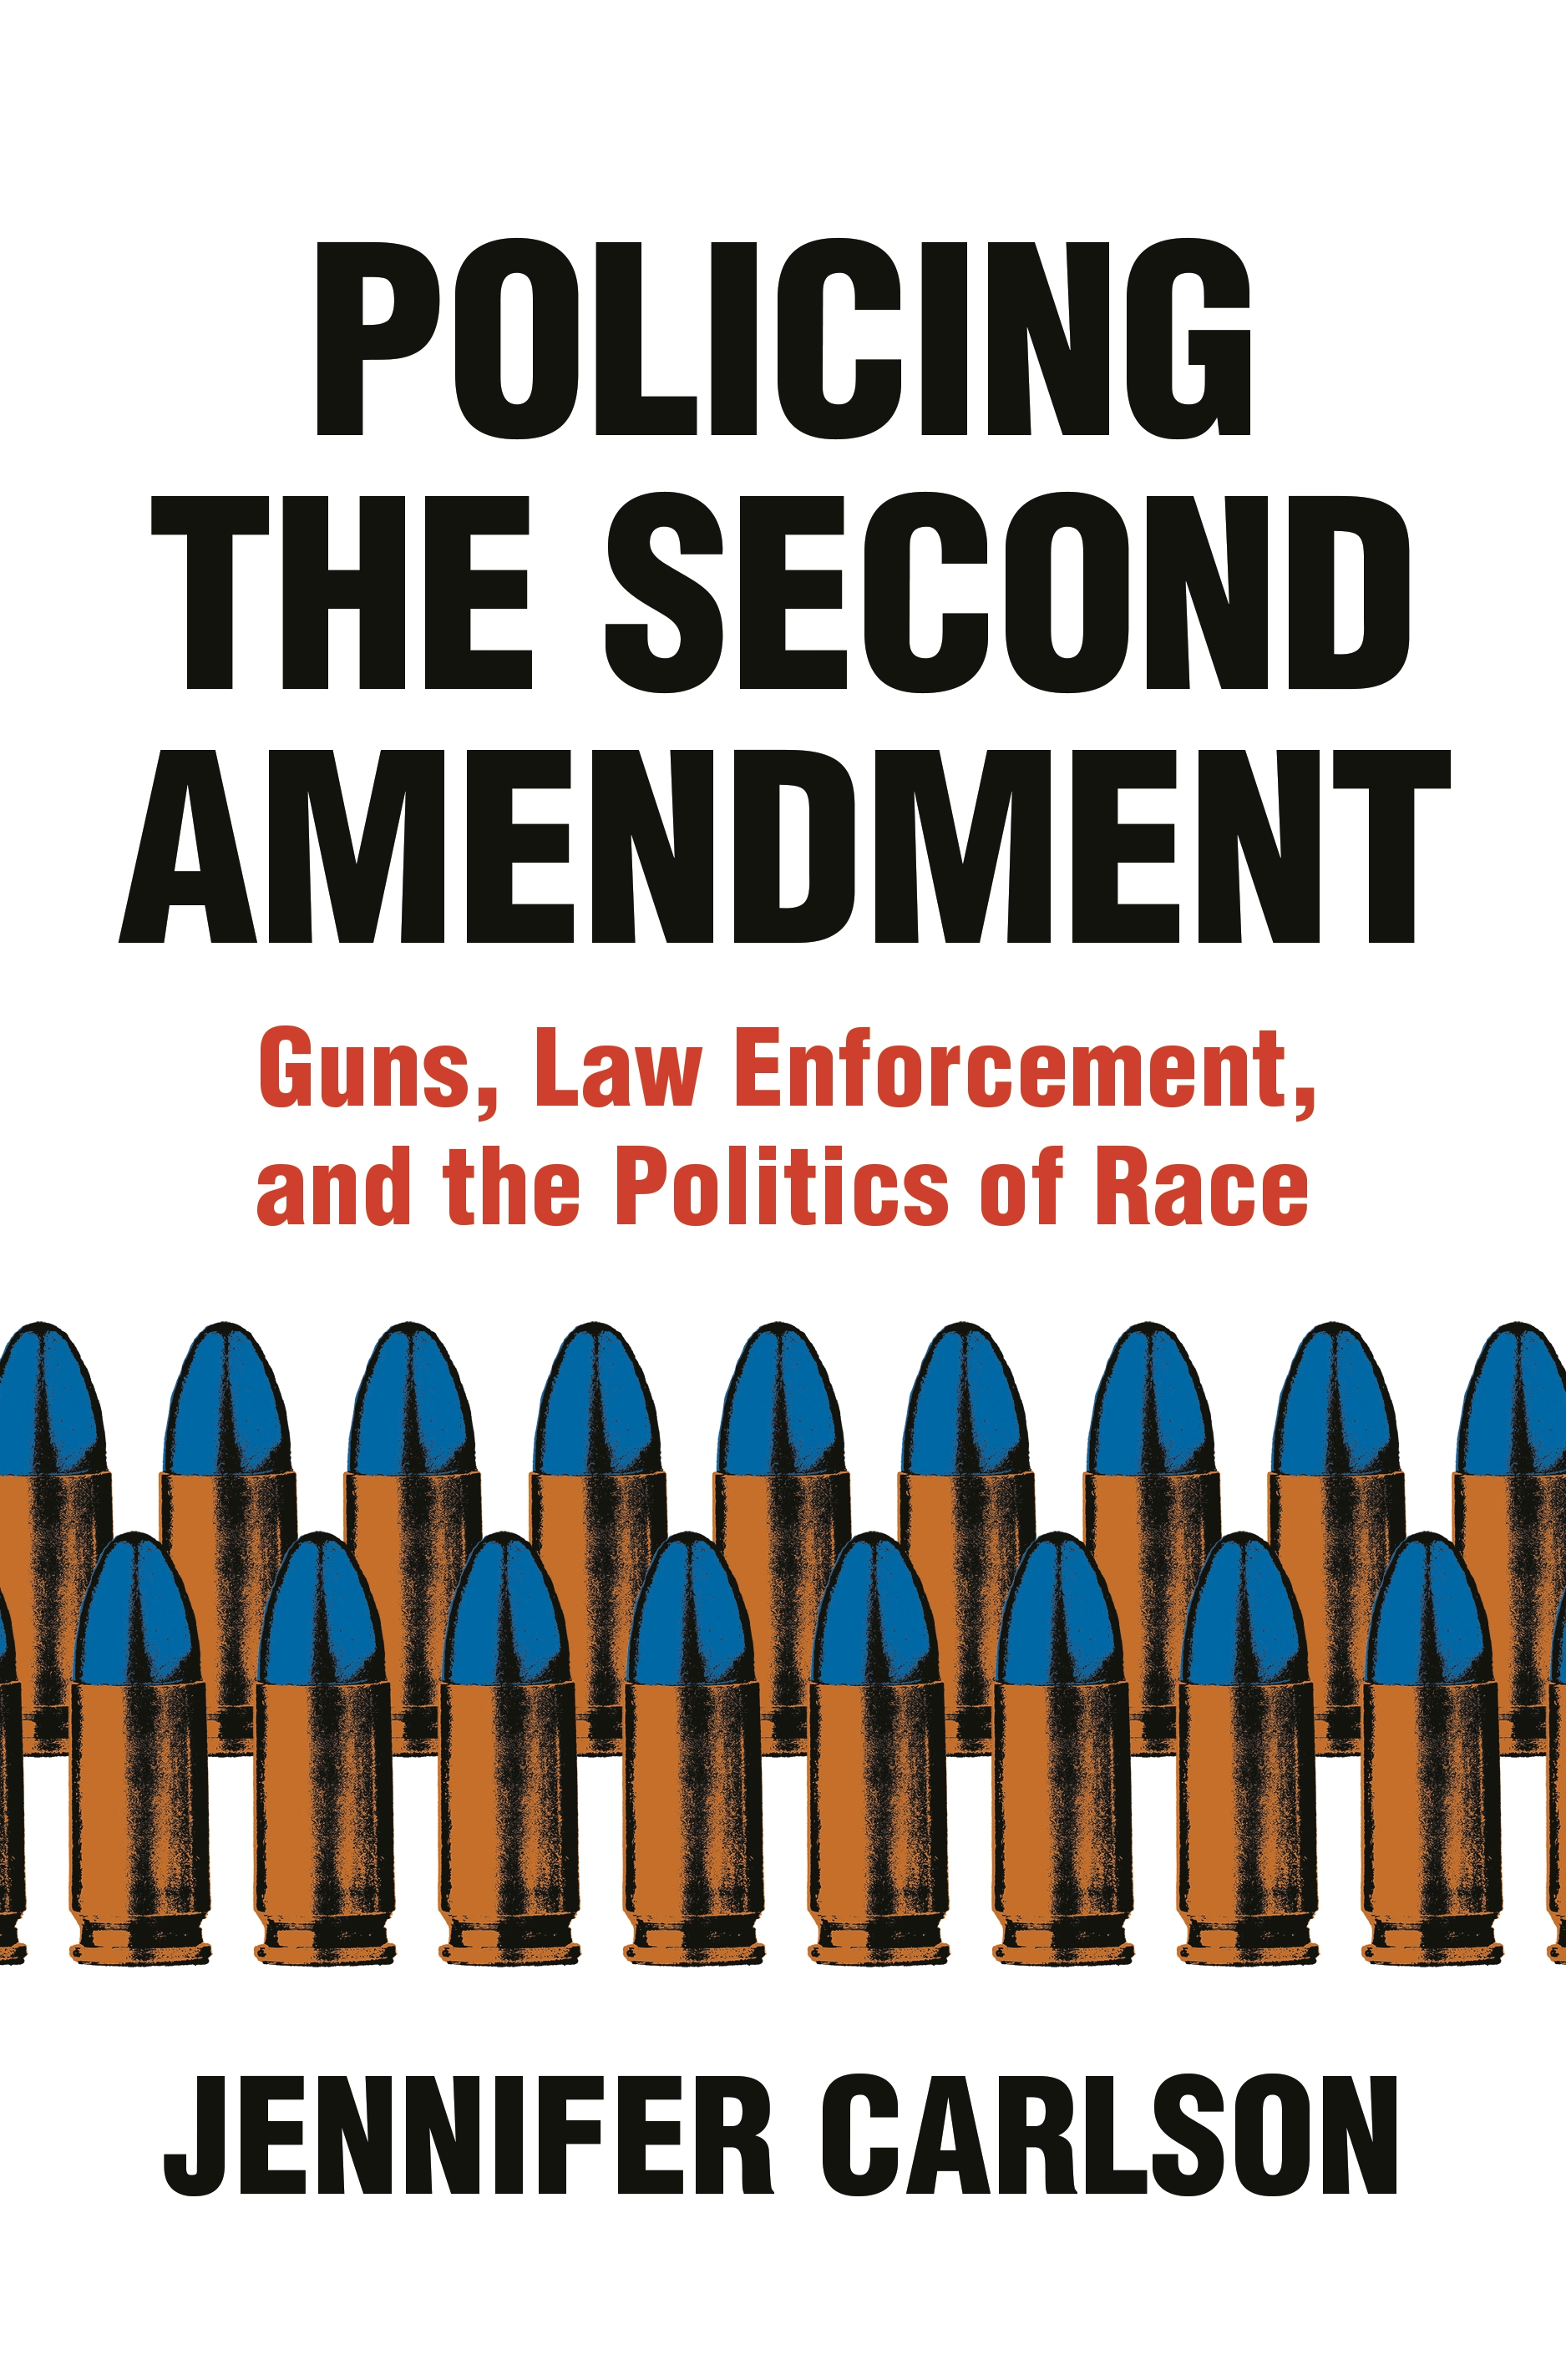 Policing the Second Amendment : Guns, Law Enforcement, and the Politics of Race